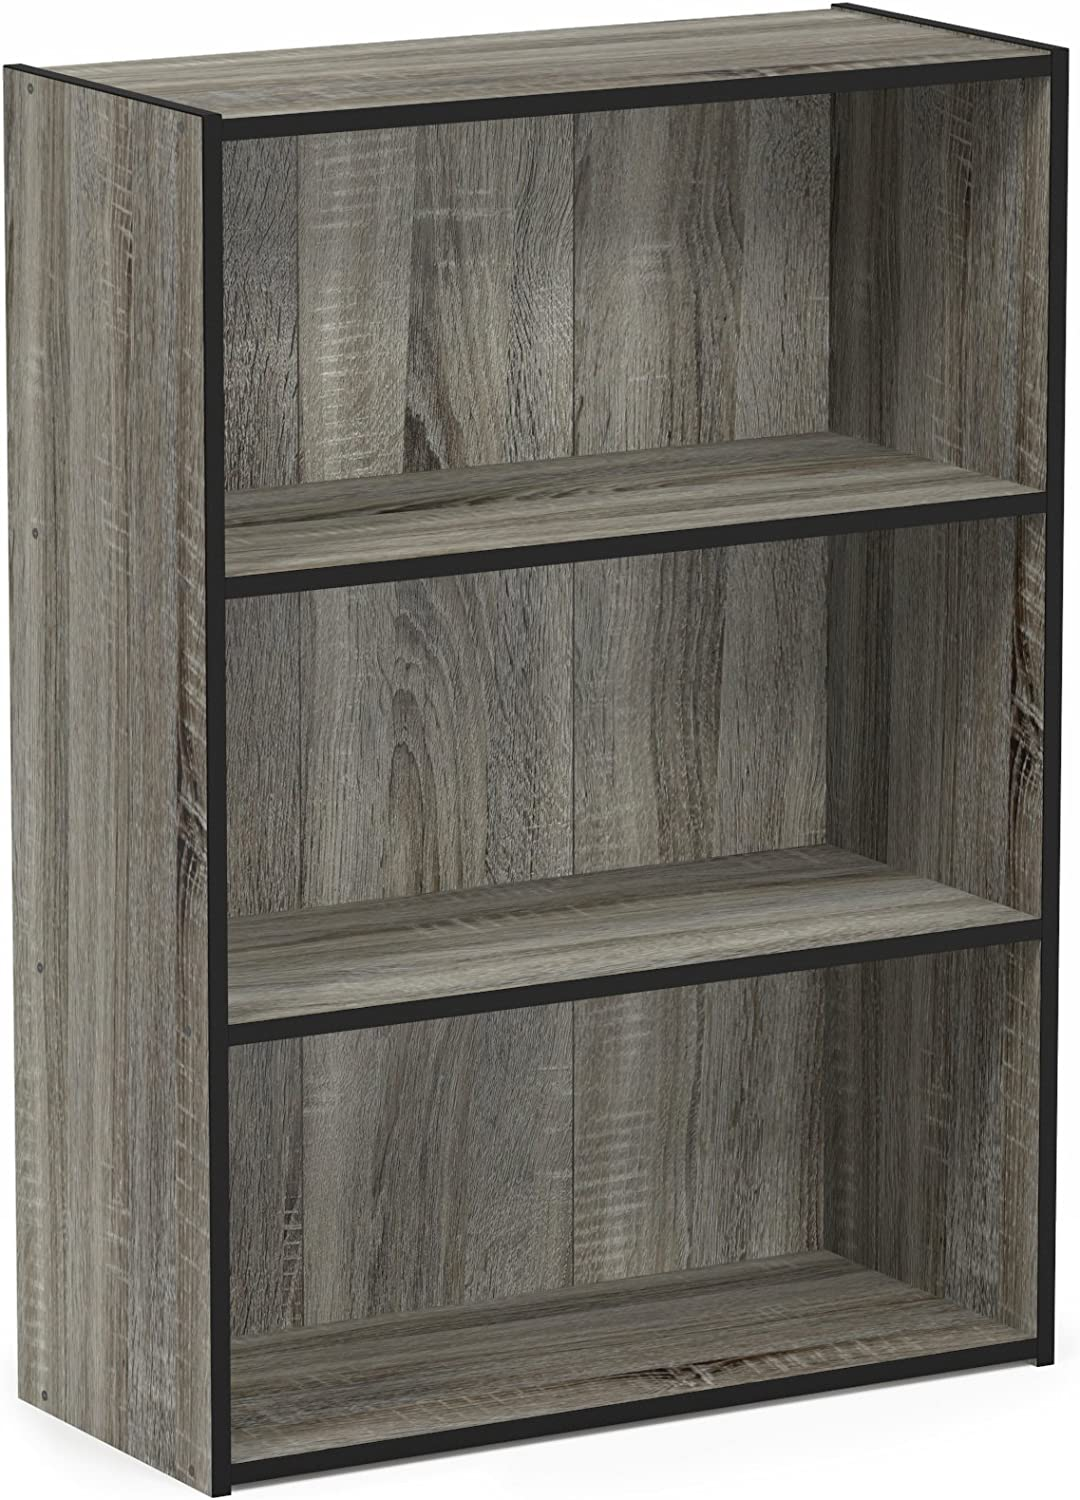 Furinno Pasir 3-Tier Open Shelf Bookcase, French Oak Grey